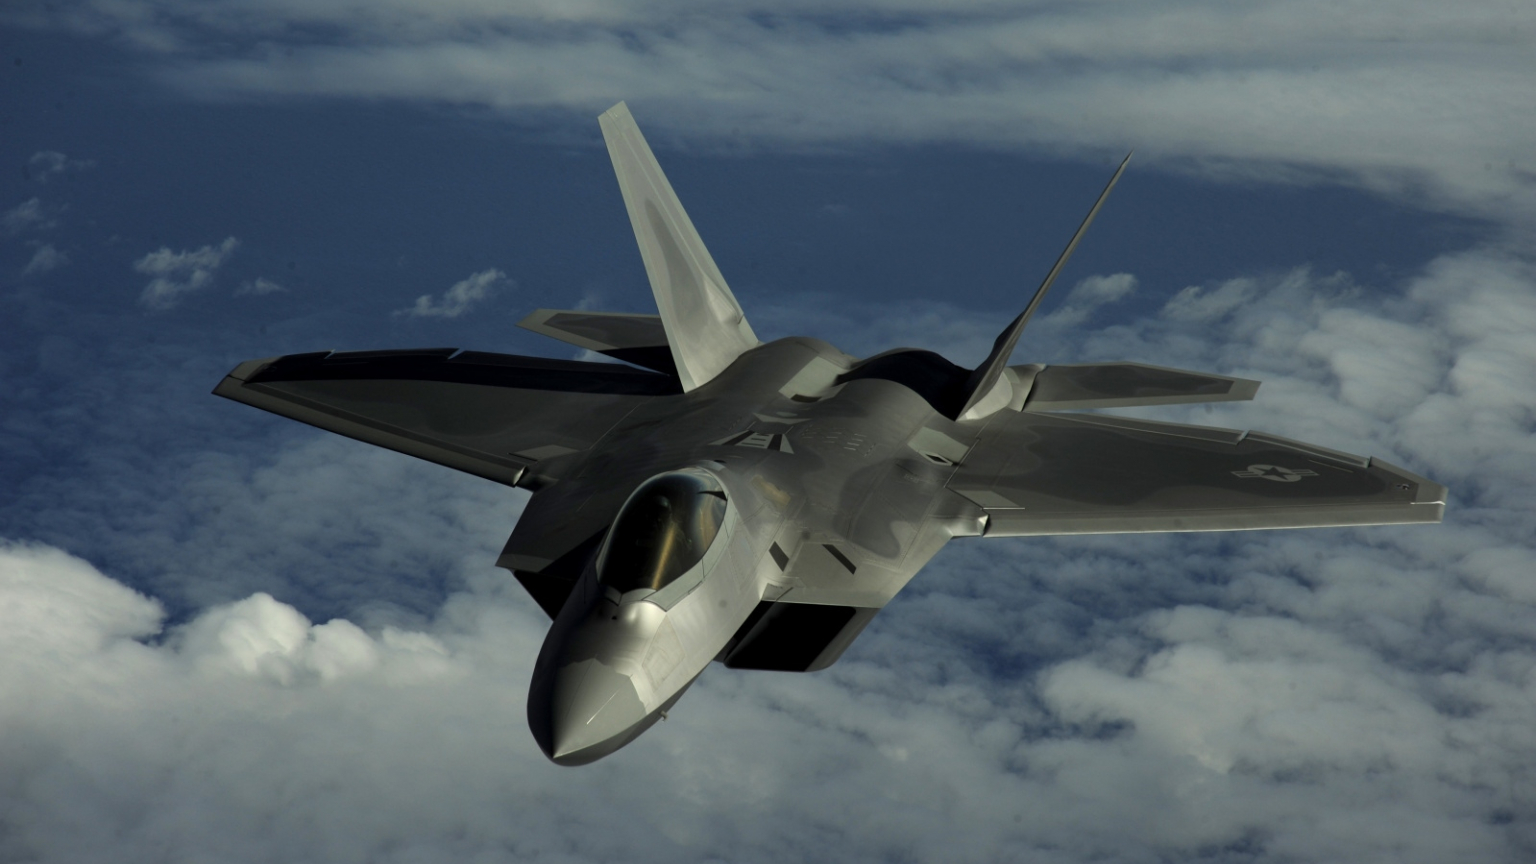 Free Download 19 F 22 Raptor Hd Wallpapers Imgcell 1599x1064 For